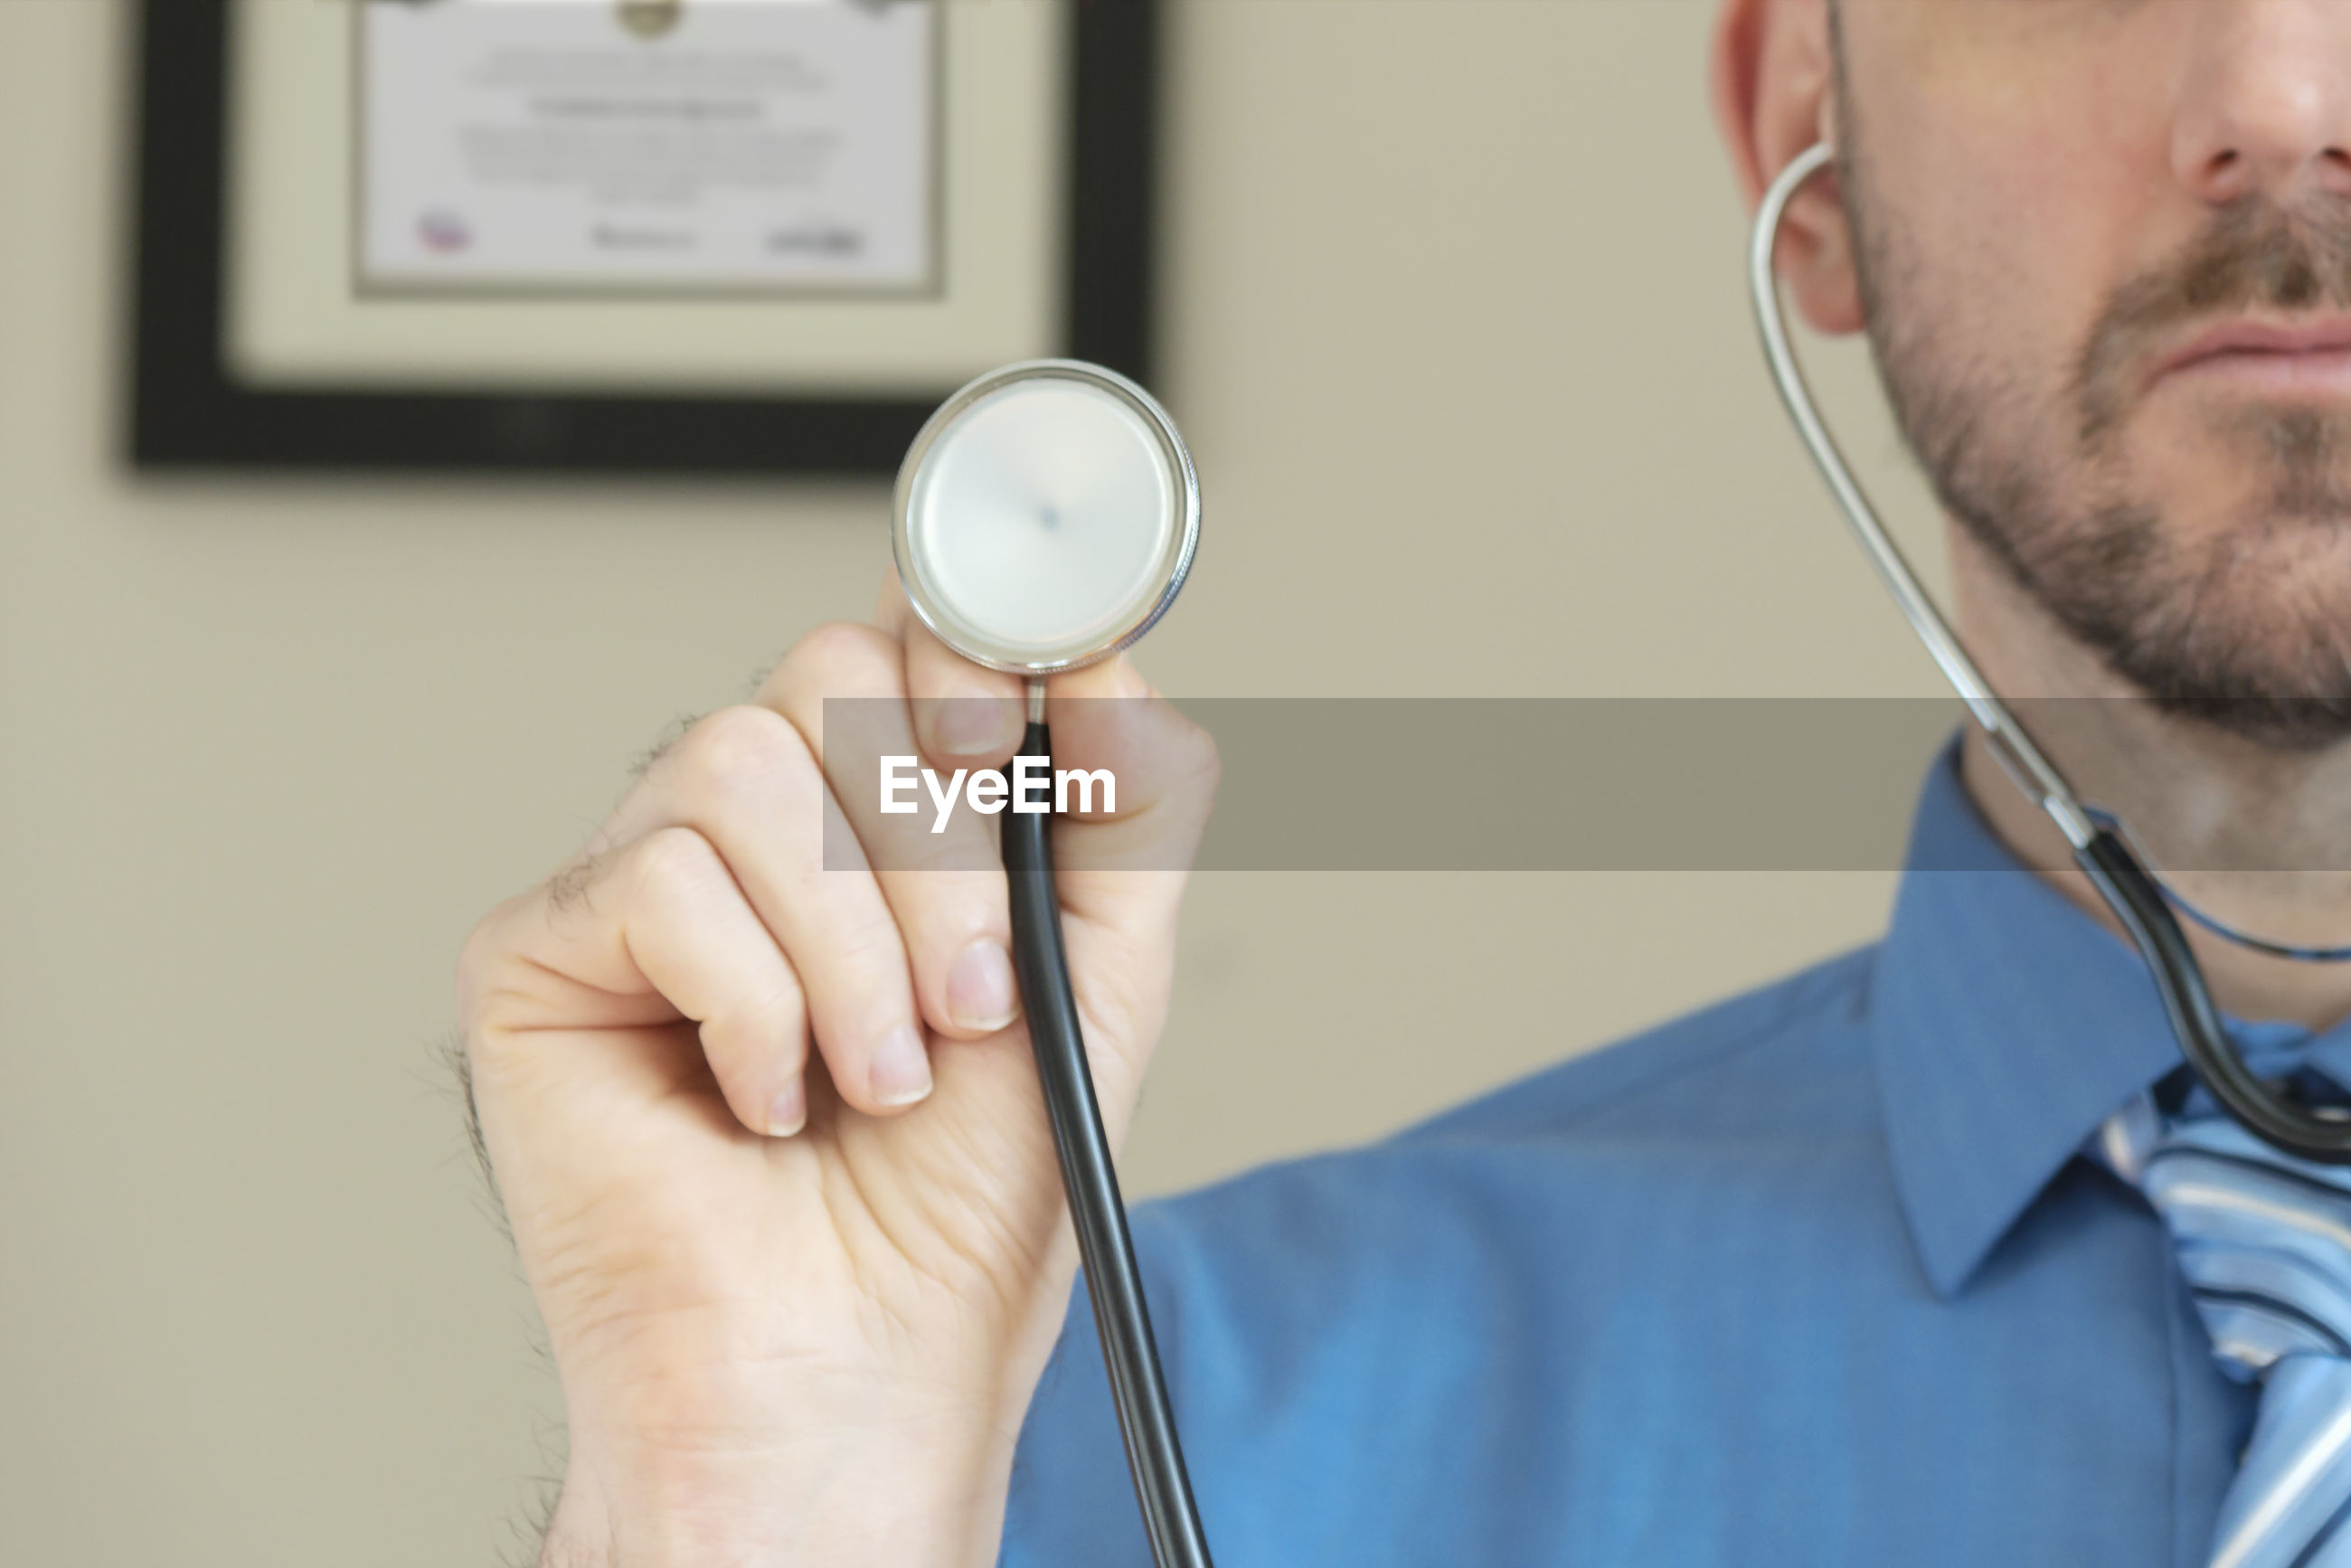 Doctor holding up stethoscope while on video chat diagnosis.